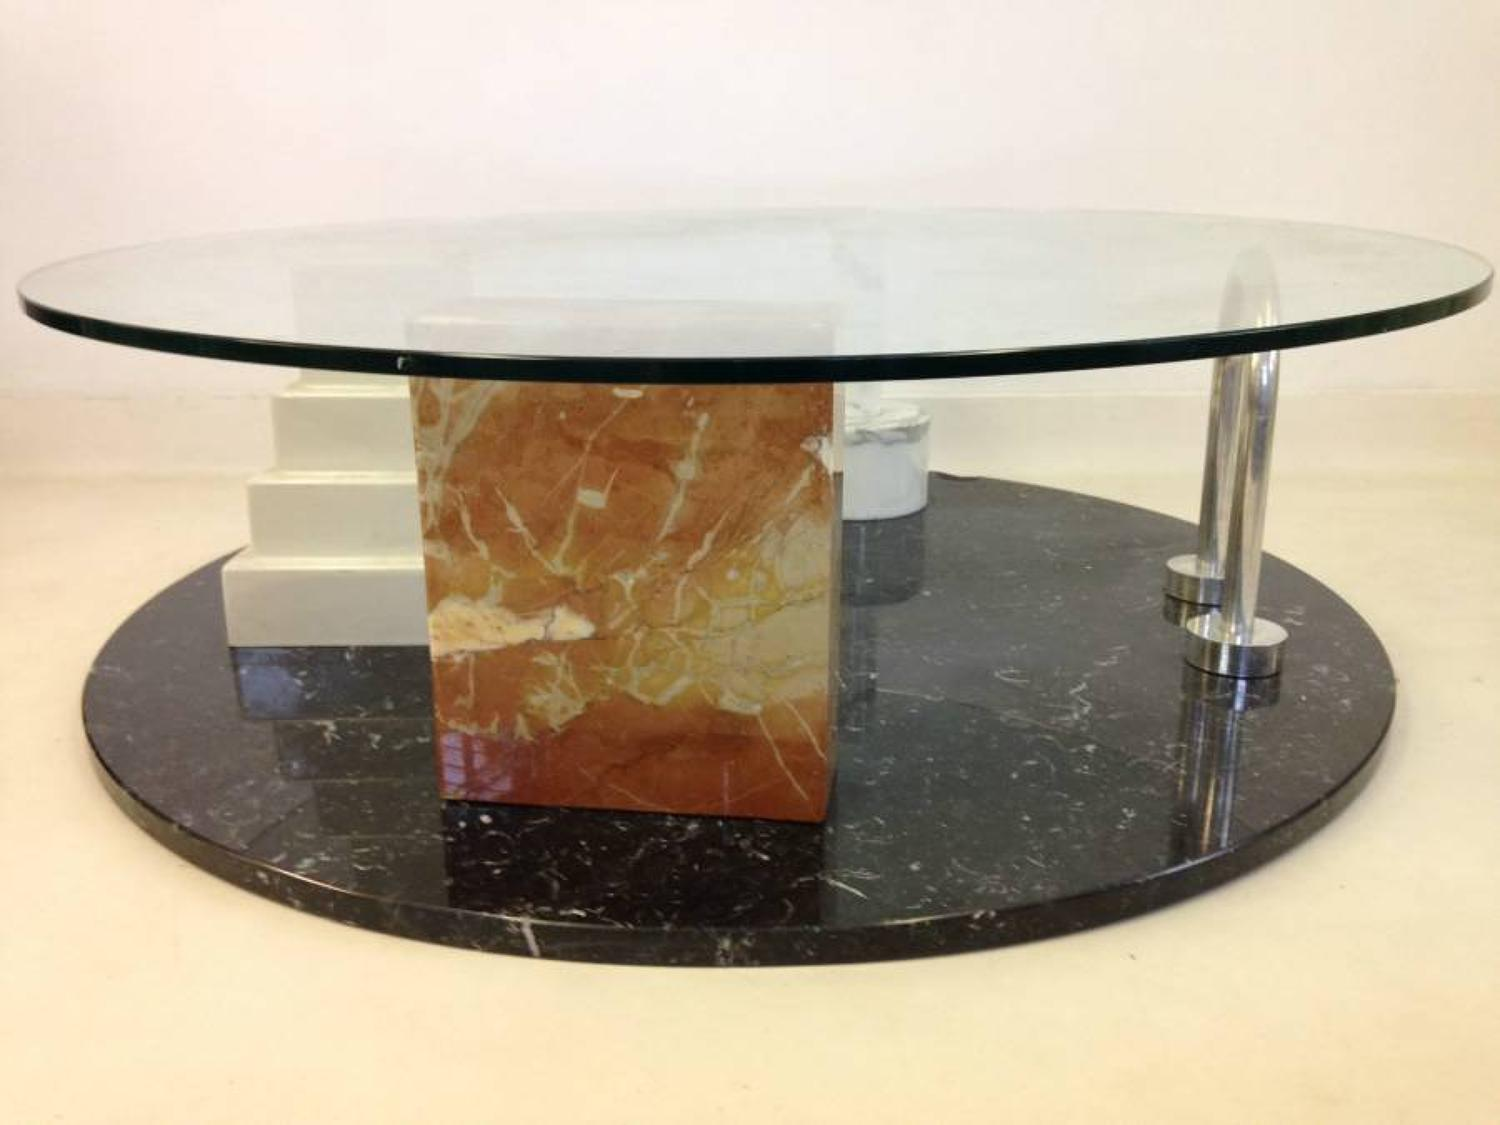 Park coffee table by Ettore Sottsass